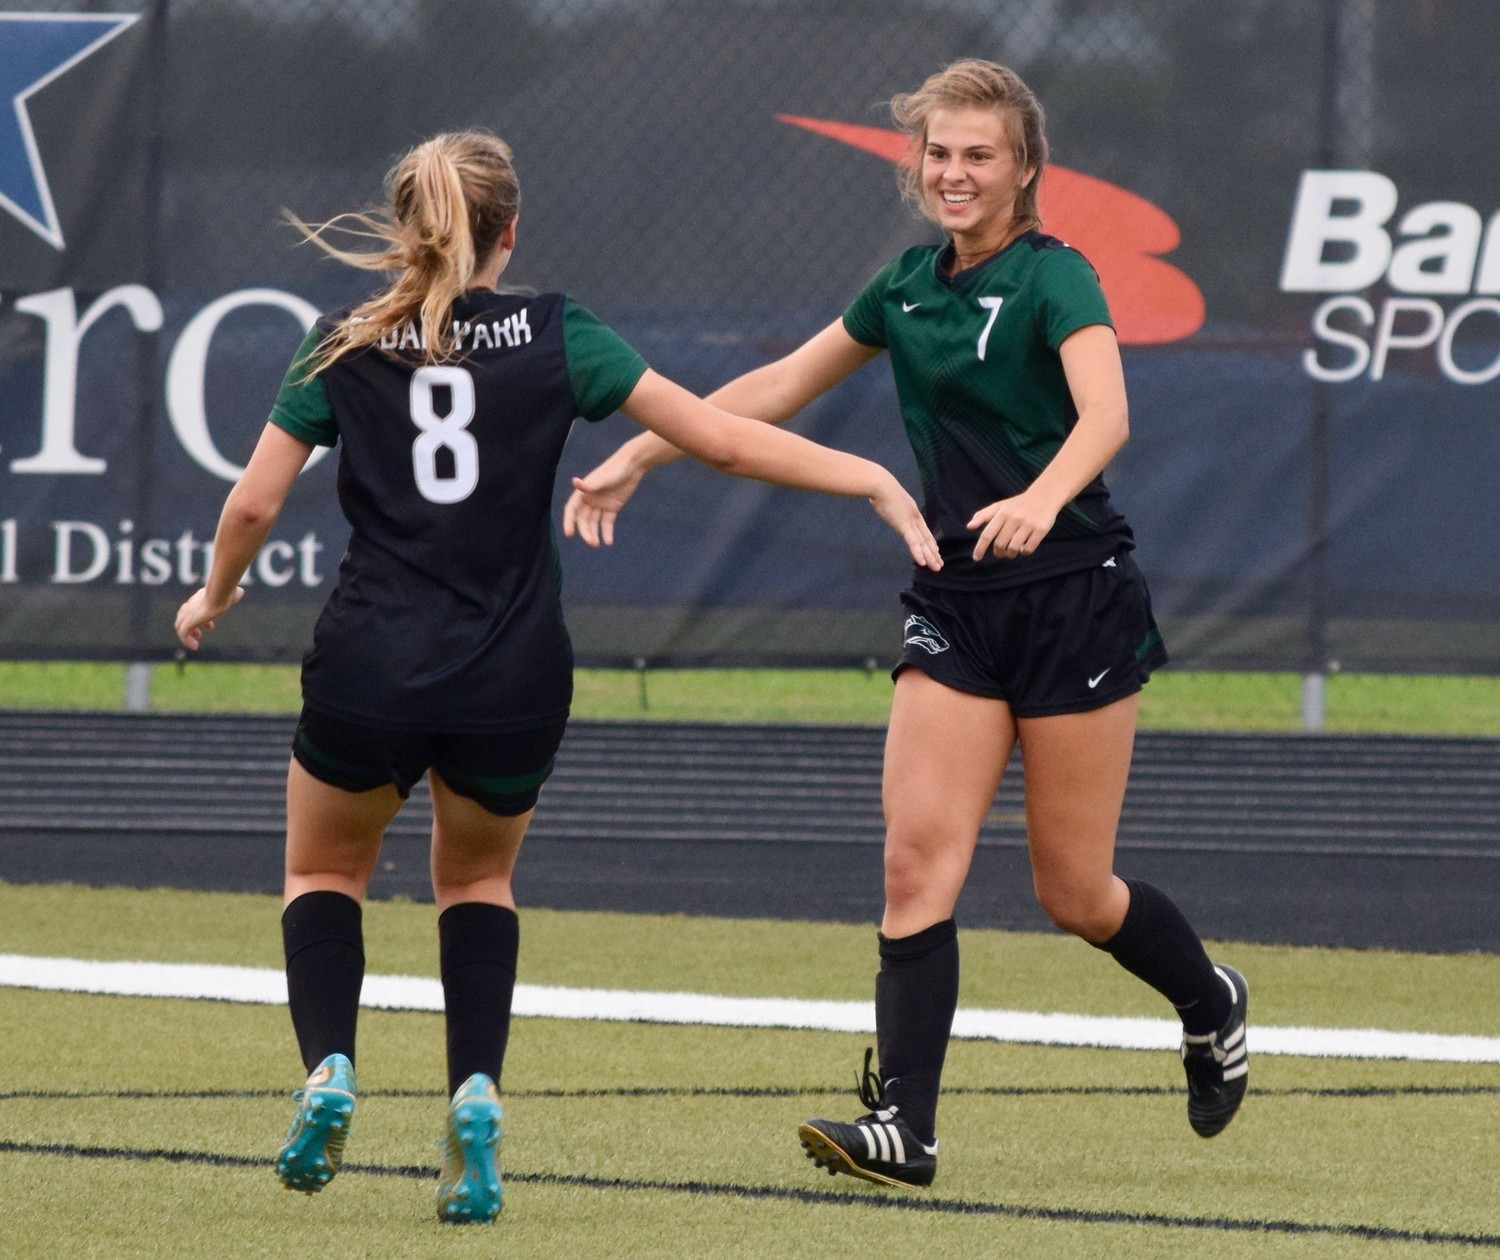 Jewell Resseguie celebrates after scoring a goal as Cedar Park beat Tomball Memorial 1-0 in Bastrop on Friday to advance to the regional semifinals.